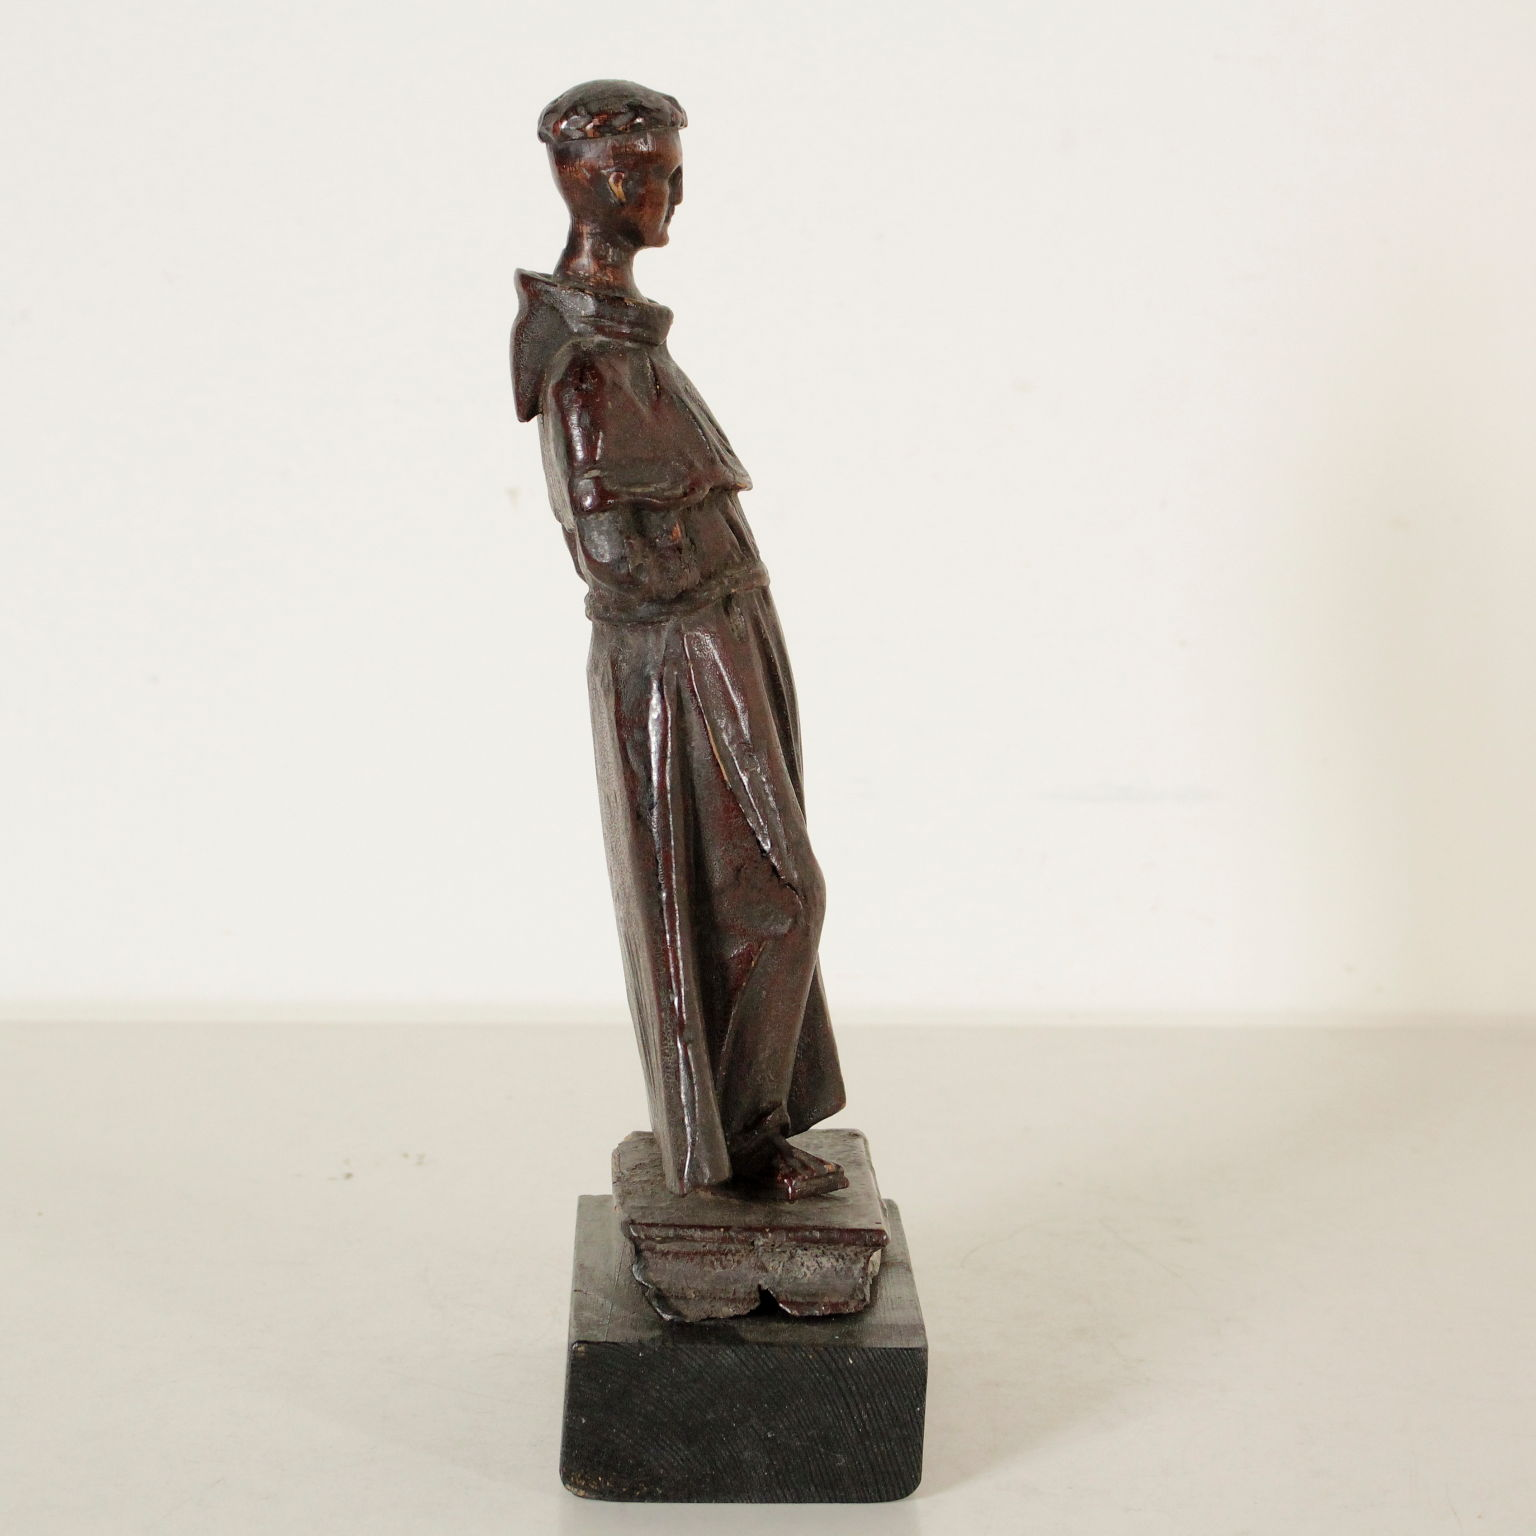 Sculpture Wood St Francis Manufactured In Italy 17th Century